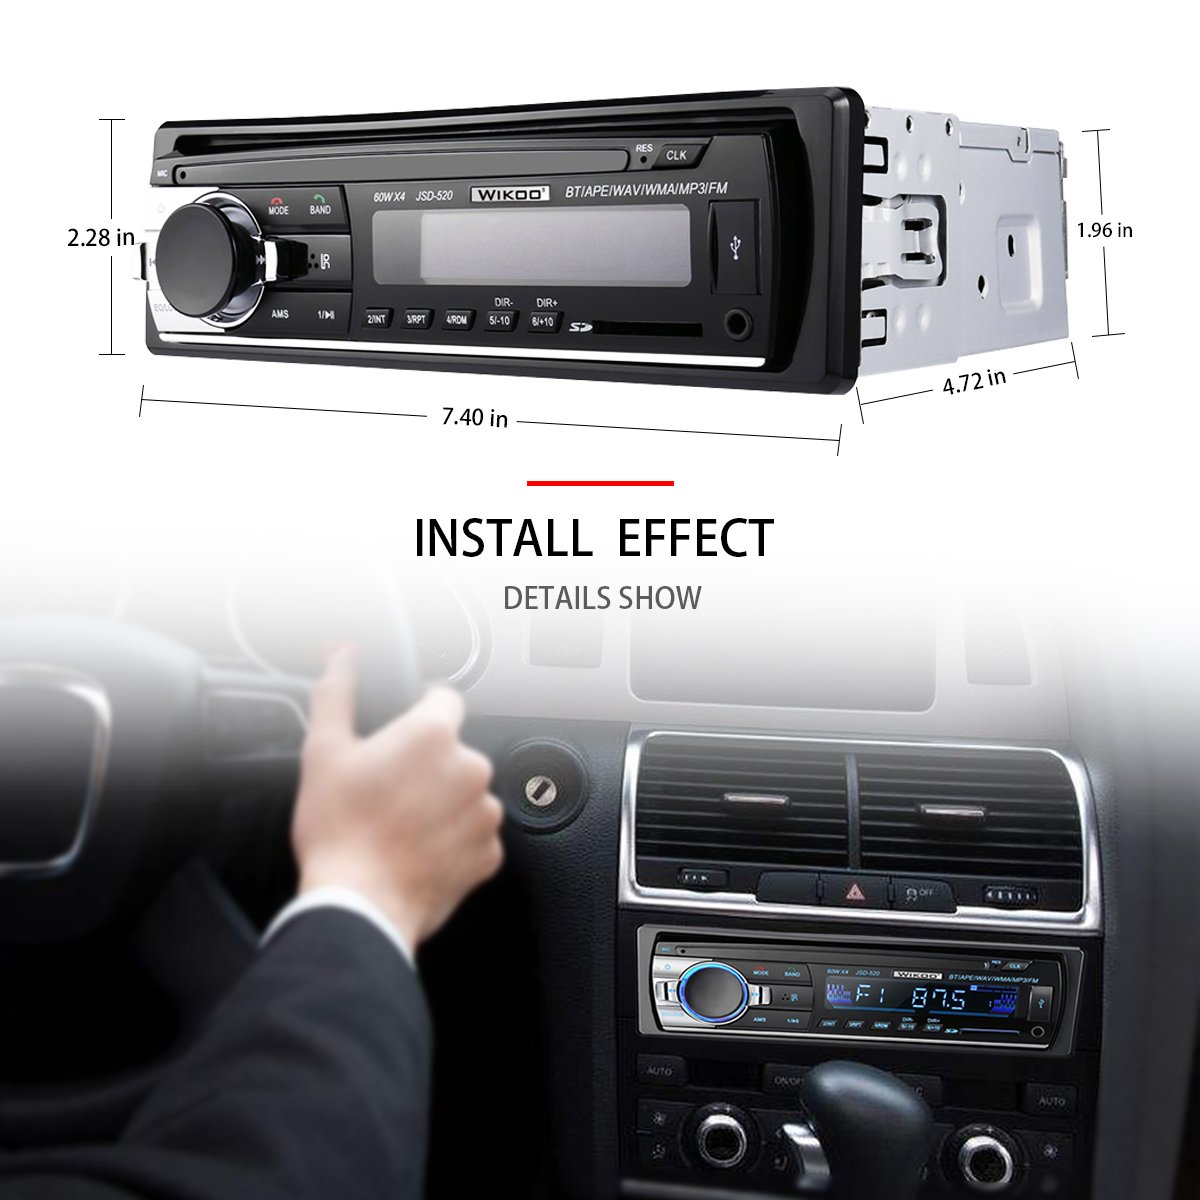 Digital Car Stereo - Wikoo Single-Din Bluetooth Car Stereo In Dash with Remote Control - Receivers USB/SD/Audio - MP3 Player/FM Radio, Supports Hands Free Calling by Wikoo (Image #5)